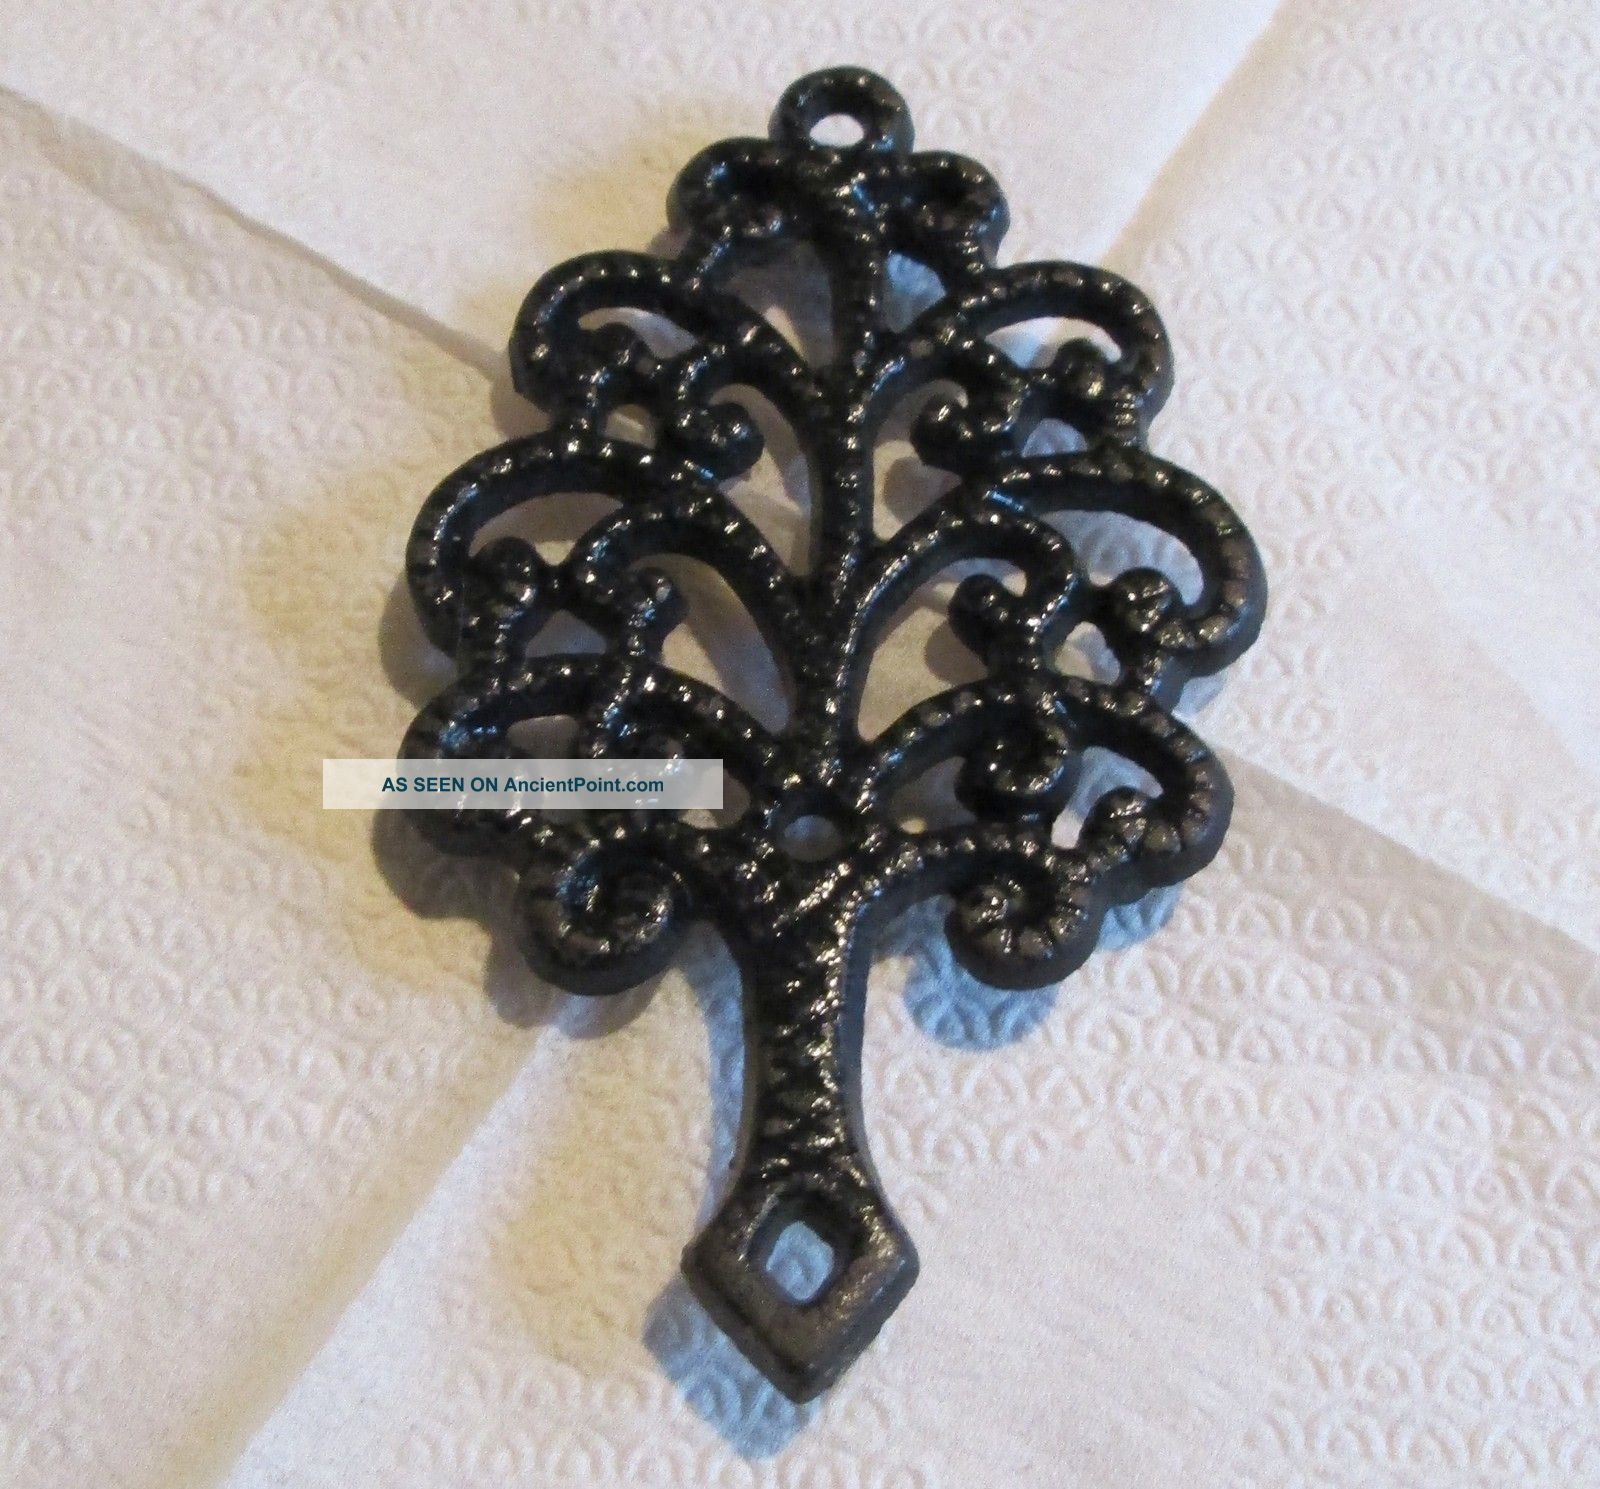 Vintage Cast Iron Metal Tree Trivet Mt - 3 Collectible Or For Kitchen Use Trivets photo